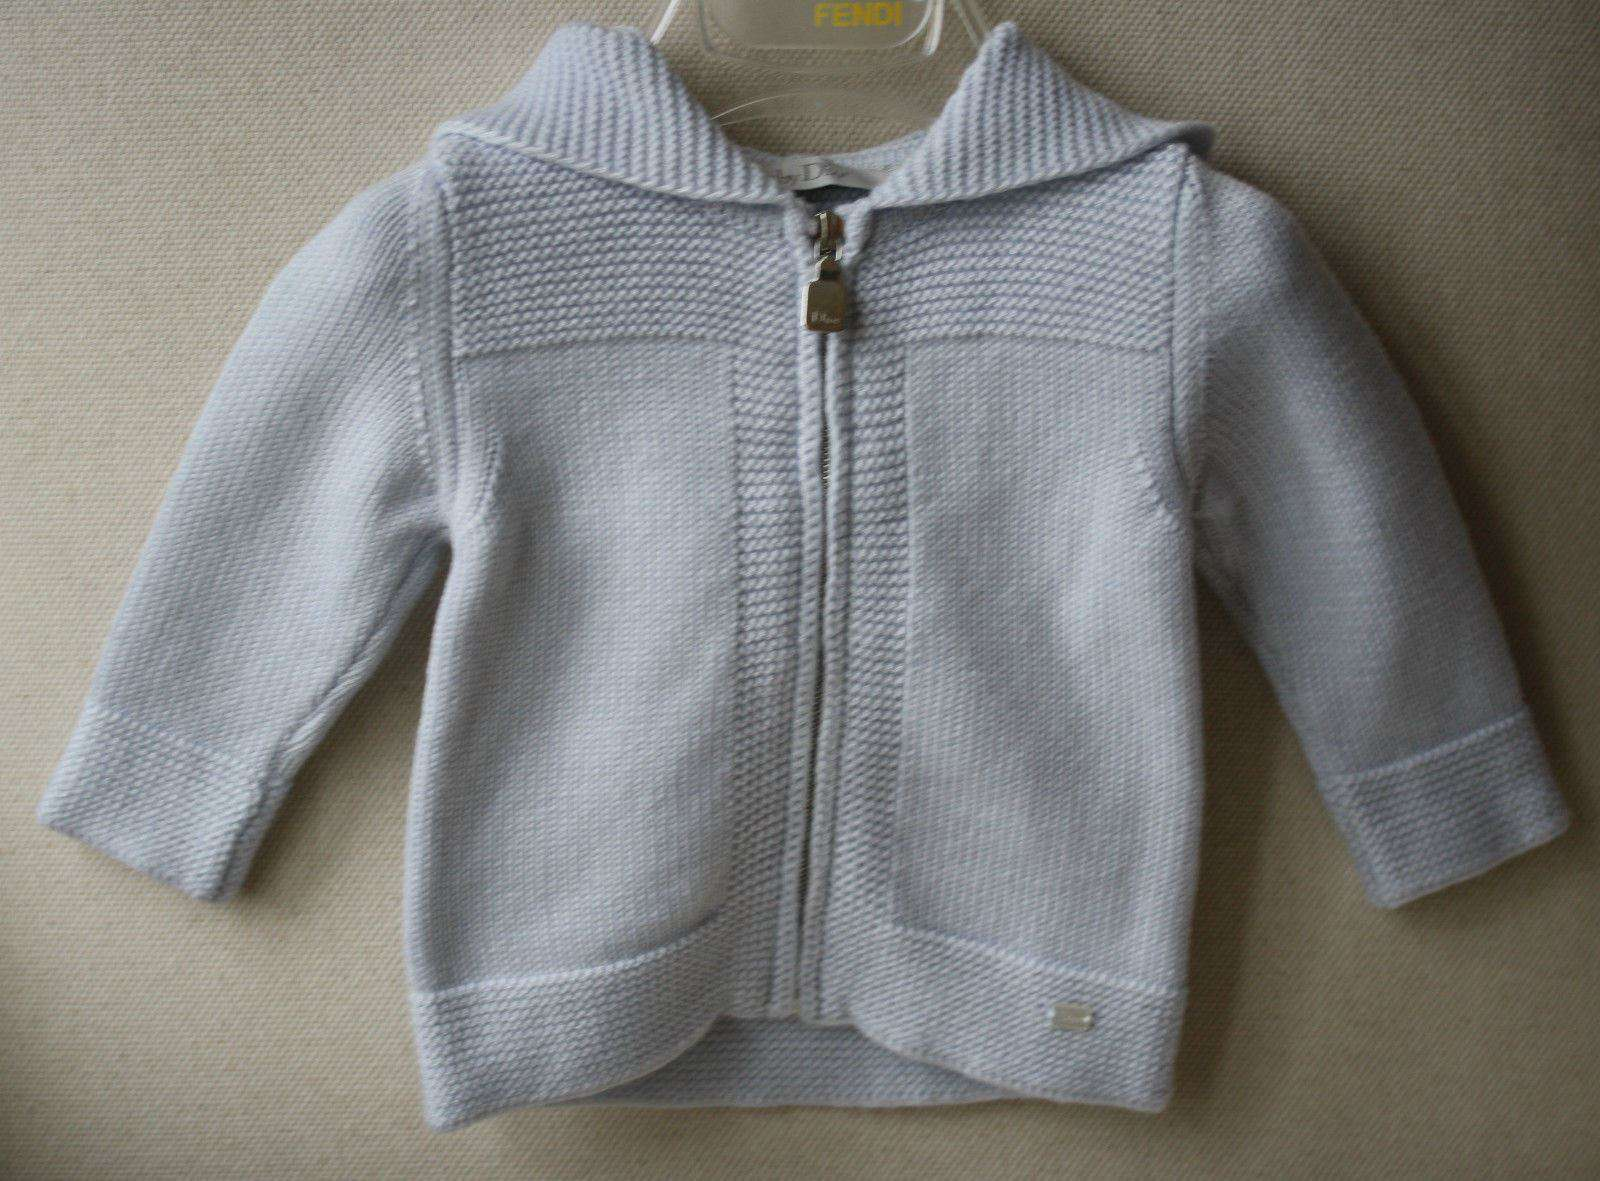 BABY DIOR BLUE WOOL HOODED CARDIGAN 6 MONTHS